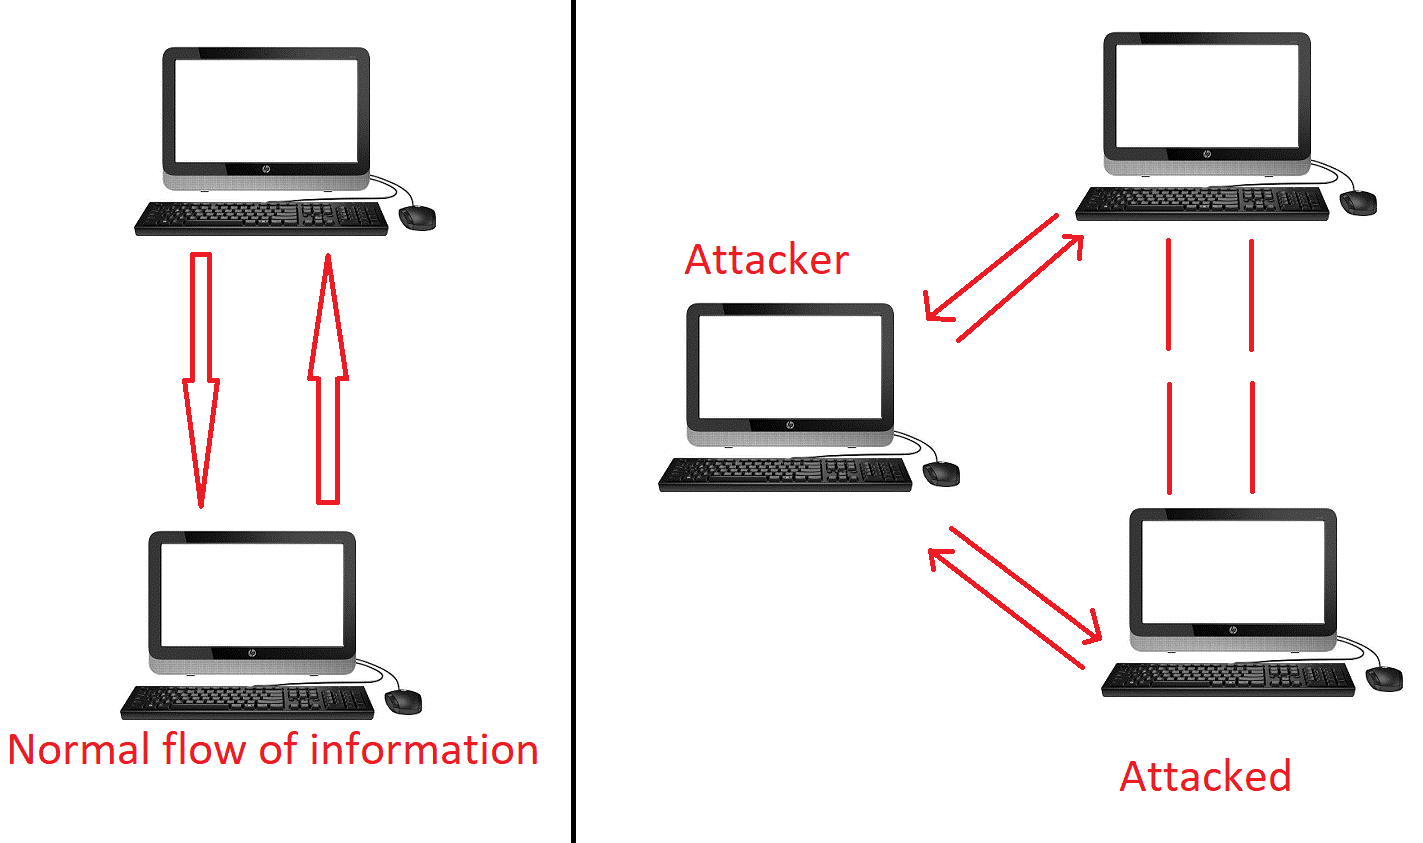 session Hijacking and Man-in-the-Middle Attacks